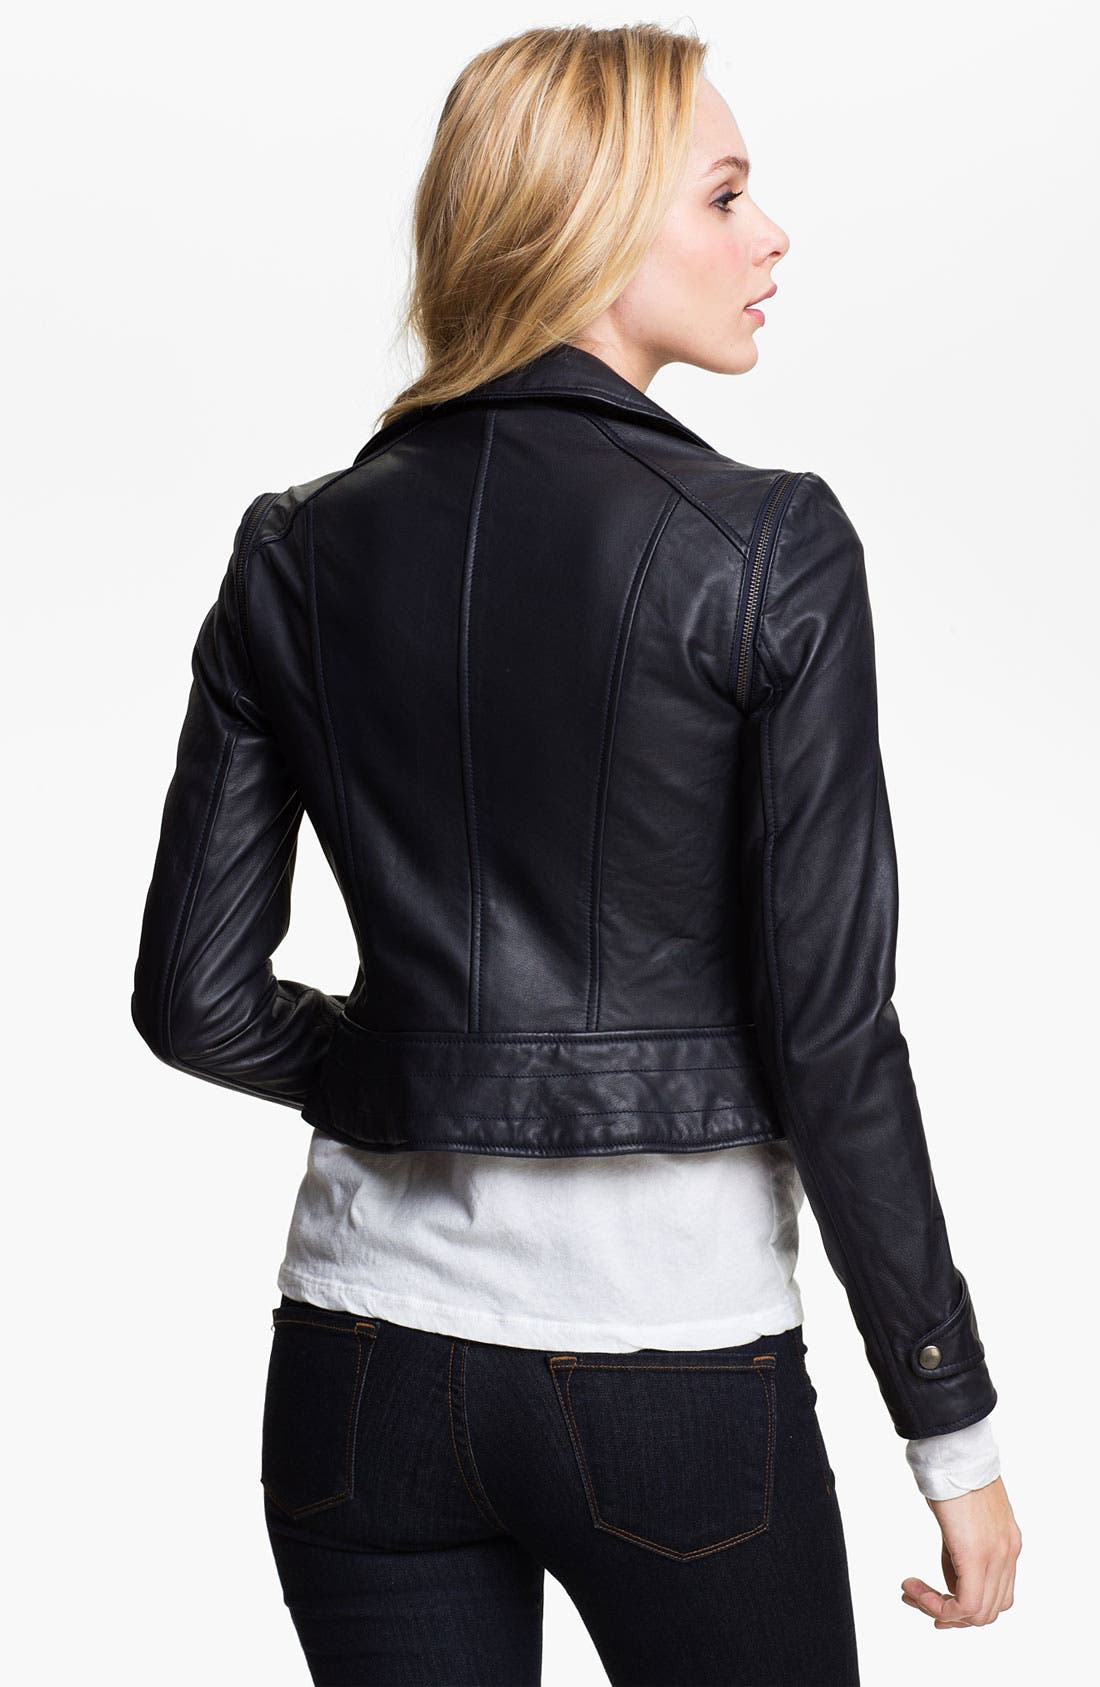 Kenna-T Convertible Quilted Leather Biker Jacket,                             Alternate thumbnail 2, color,                             410